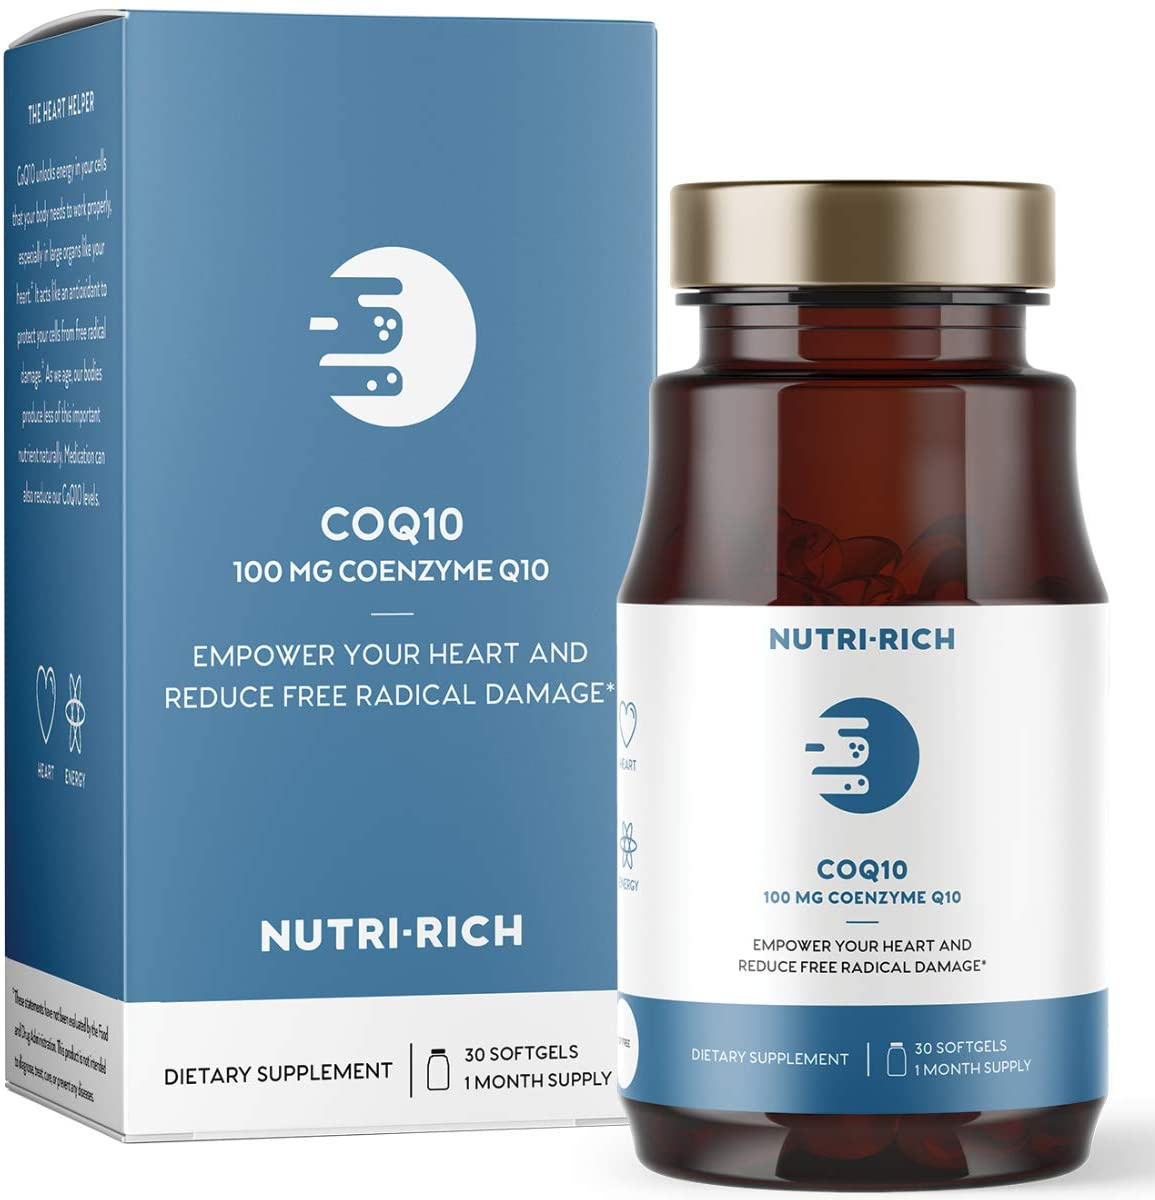 CoQ10 by Nutri-Rich -�HIGH Potency 100mg coenzyme Q10, Antioxidant for Heart Health & Cellular Energy, Naturally Fermented, for Aging & Statin Usage (30 Softgels)